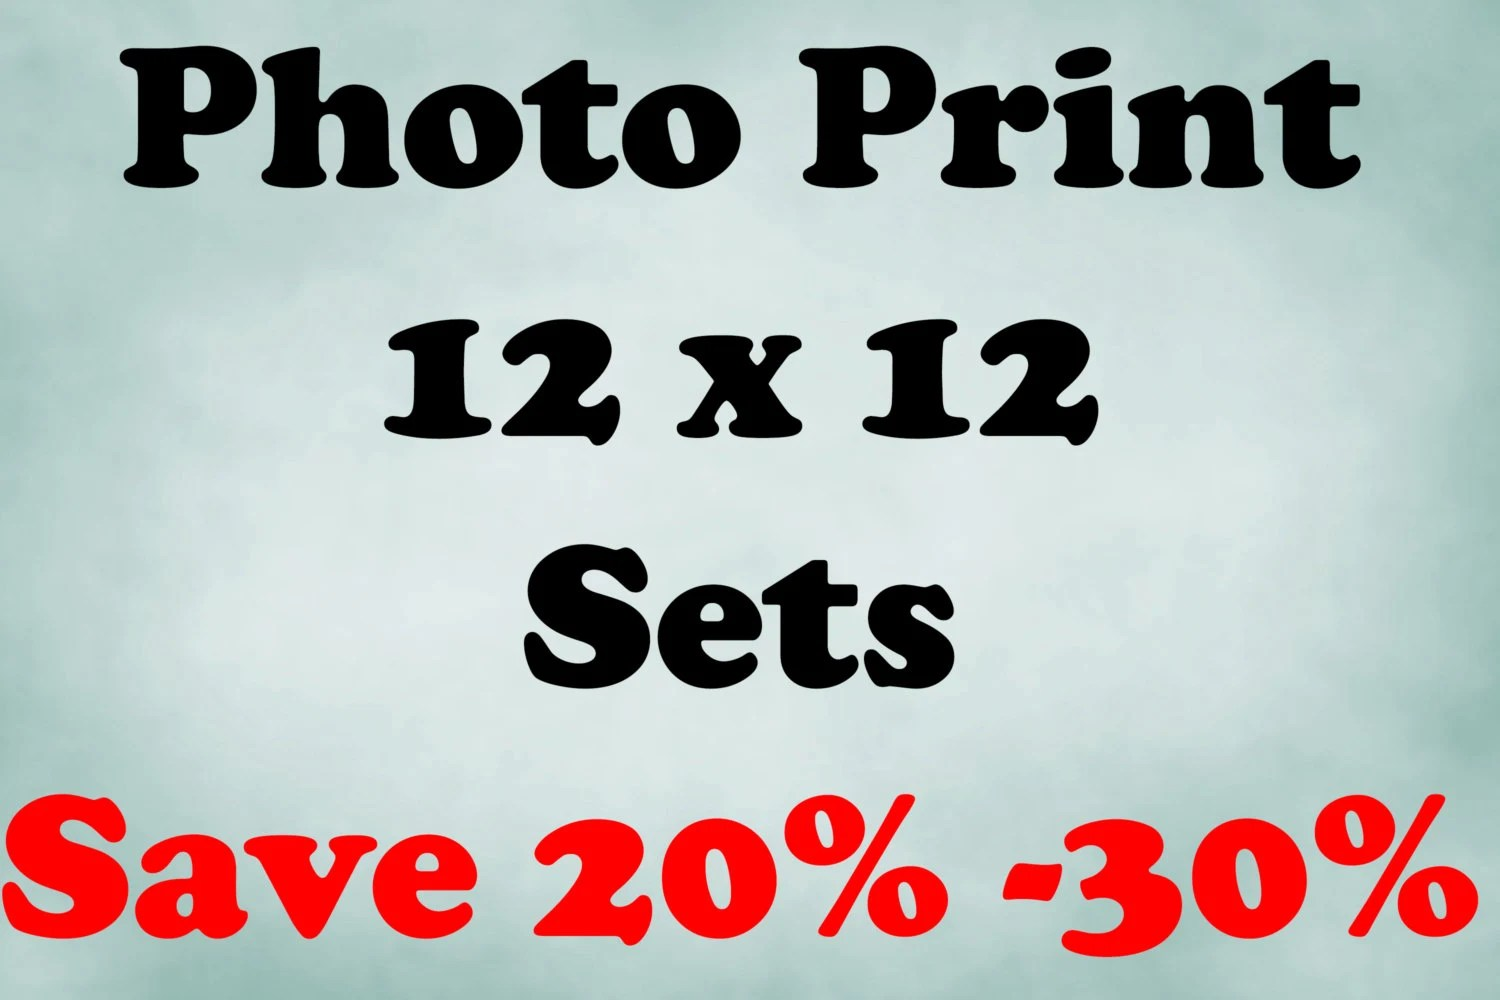 12x12 Poster 12x12 Prints 12x12 Print Sets Set Of 12x12 Prints 12x12